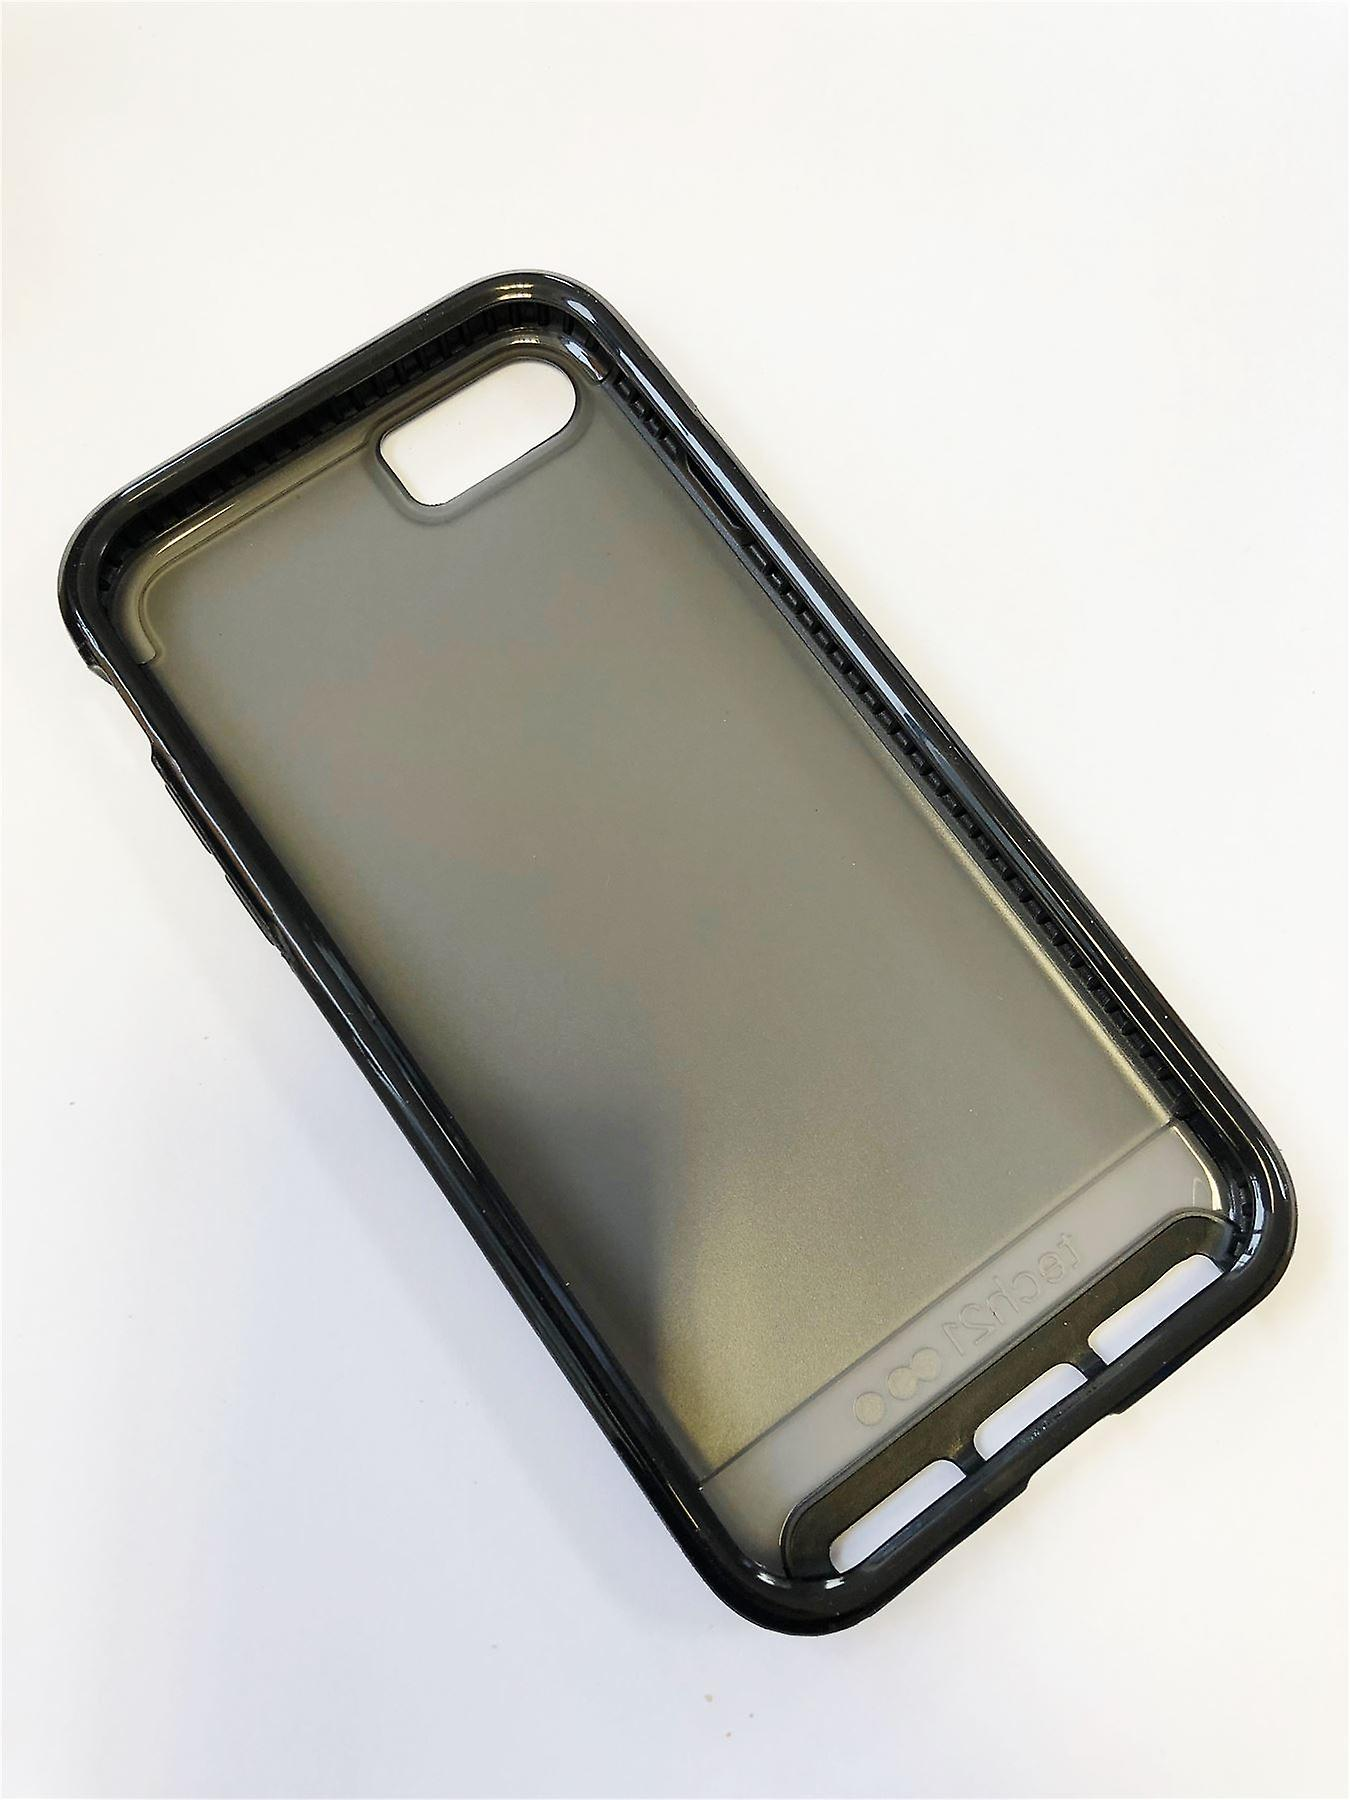 buy popular 20bd6 f7f87 Genuine Tech21 Evo Elite Case Impact Cover for iPhone 7 iPhone 8 - Polished  Black